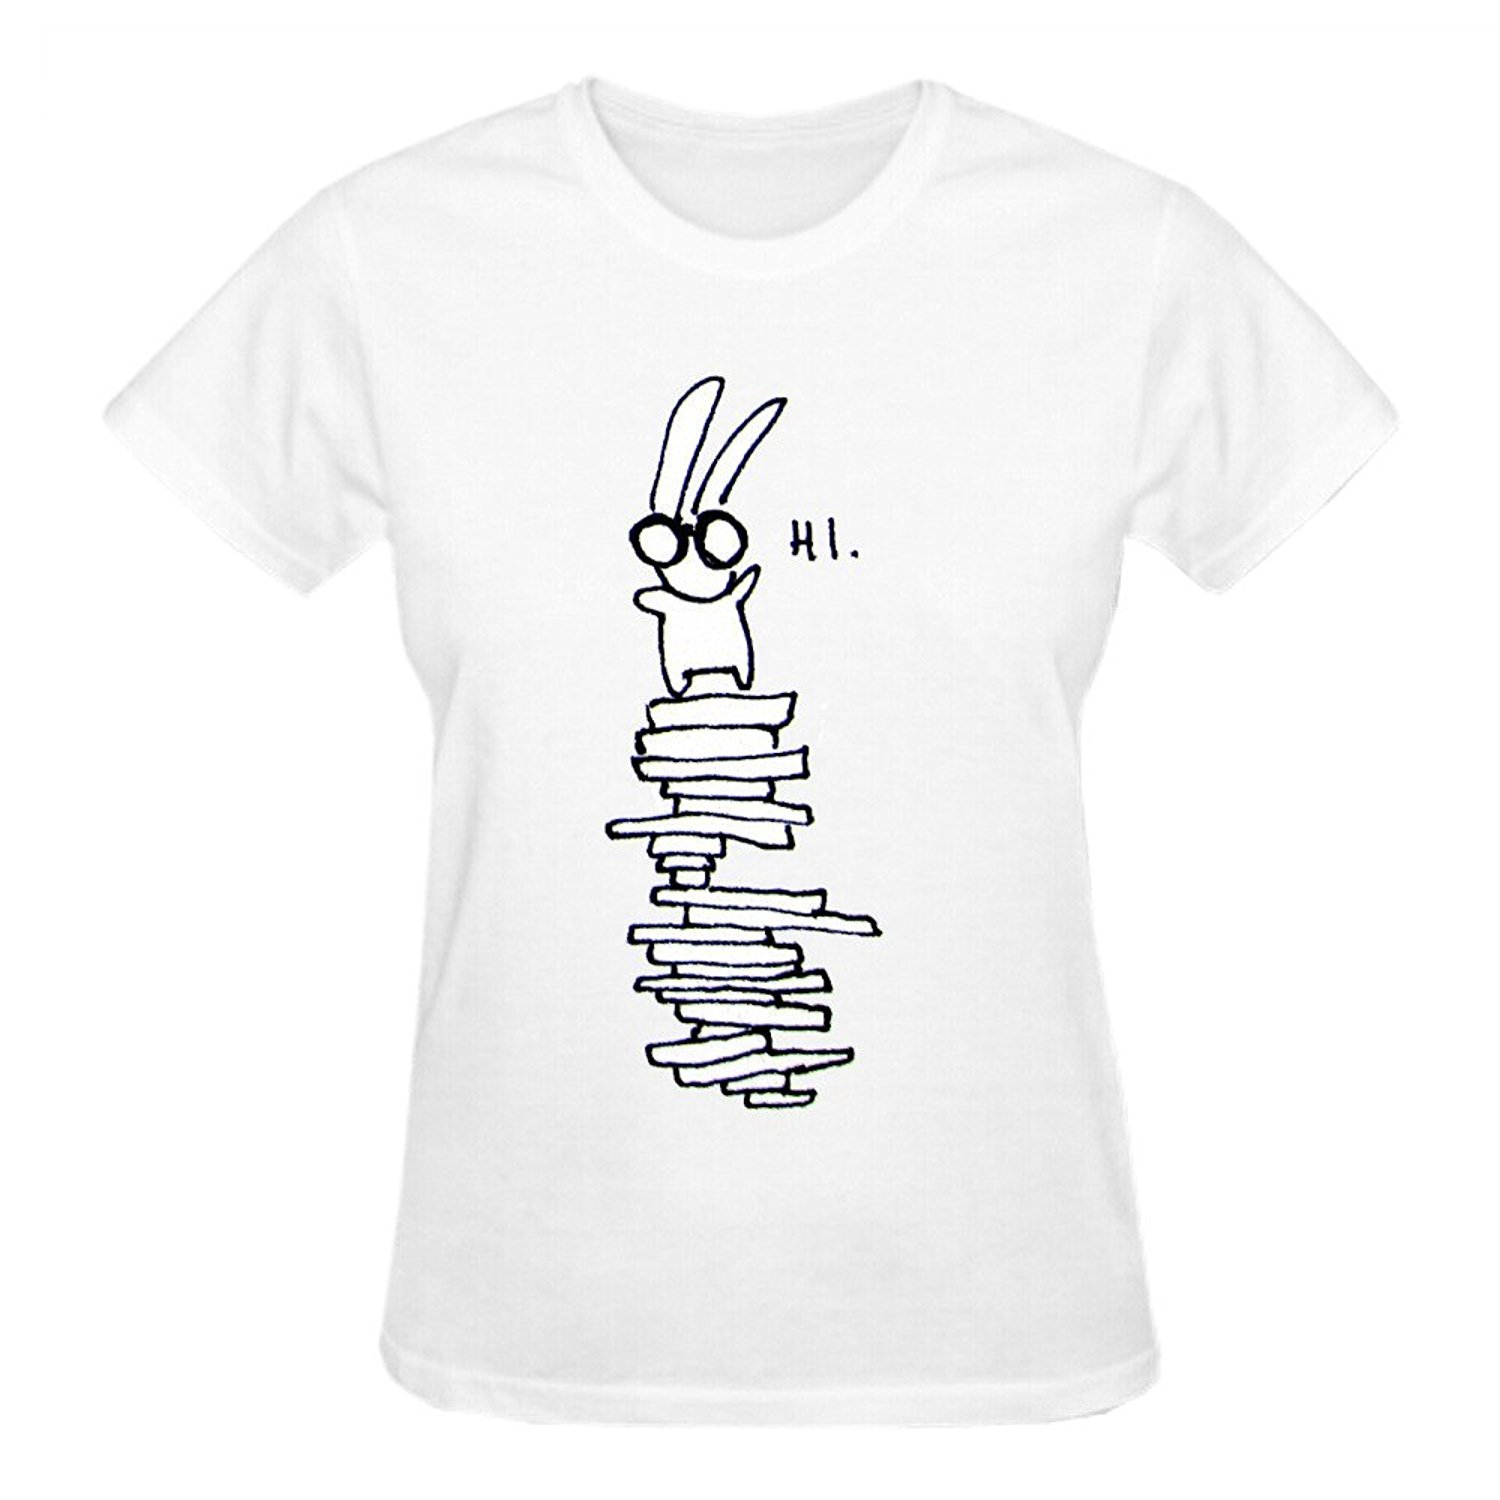 Design your own t shirt good quality - Stay Premium Fitted Quality Tee Shirts Bunny Glasses Says Hi Design Your Own T Shirts Women Round Neck Summer Design Your Own Shoes